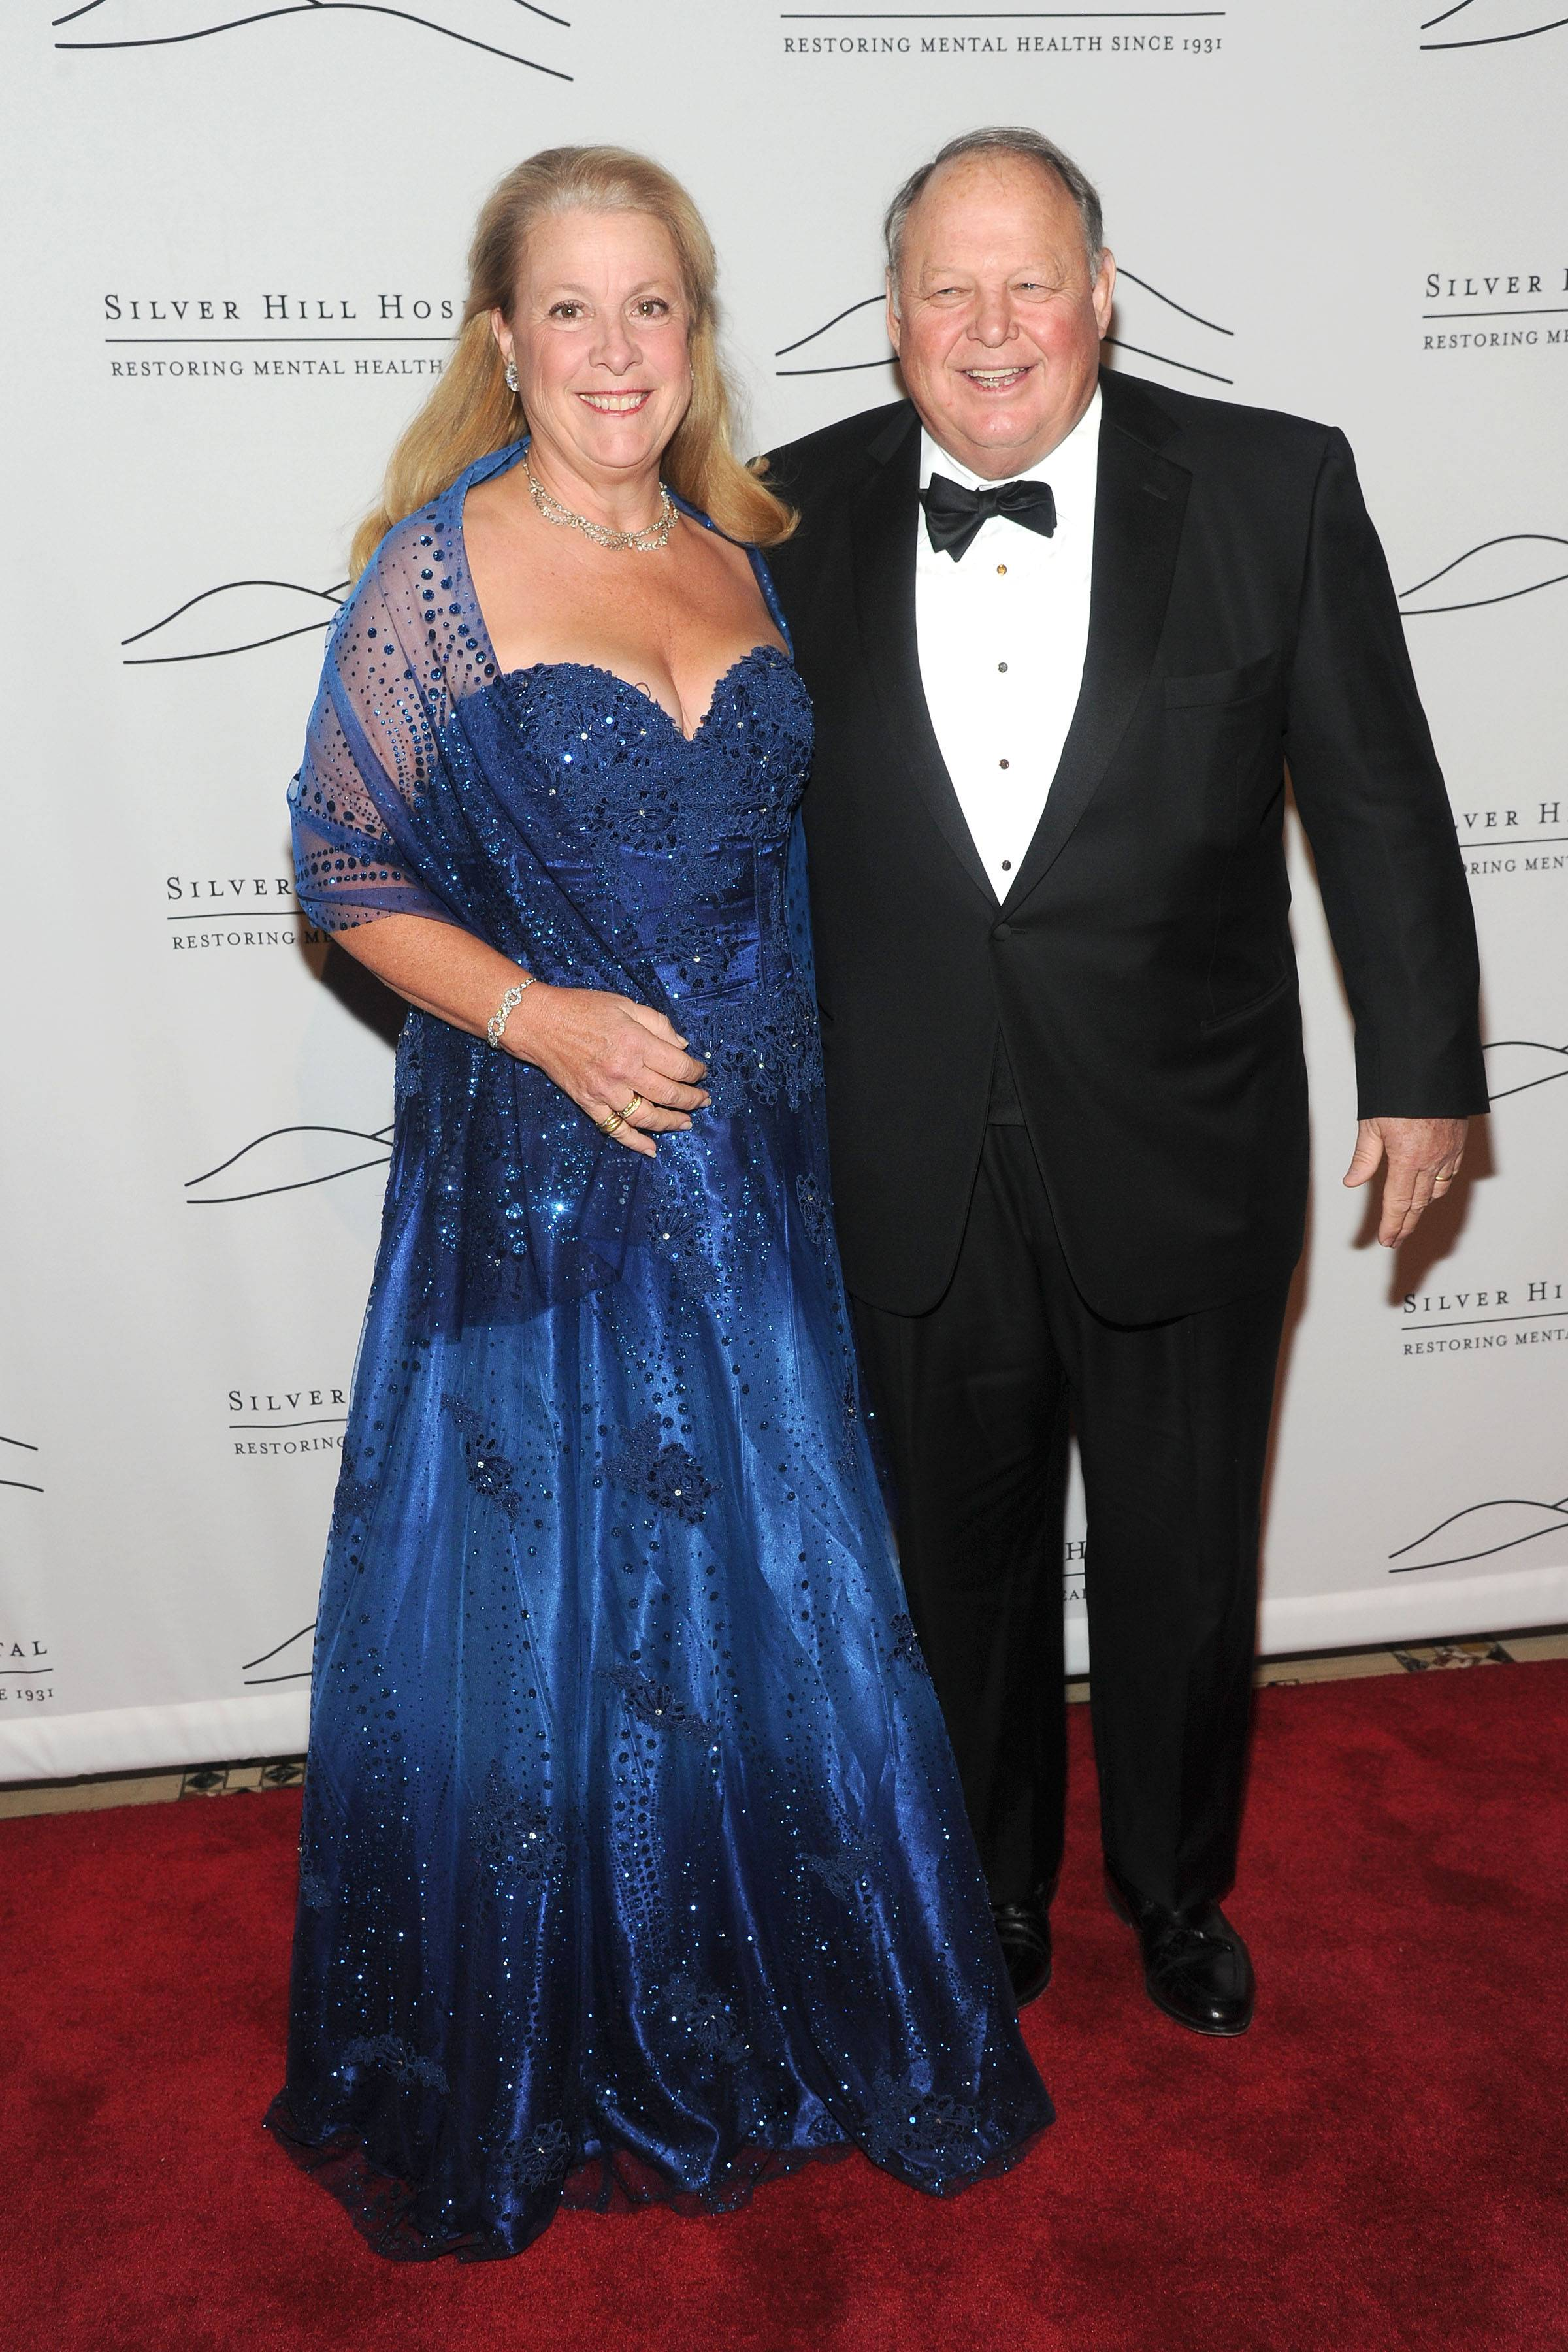 Silver Hill Hospital 2013 Gala: Arrivals